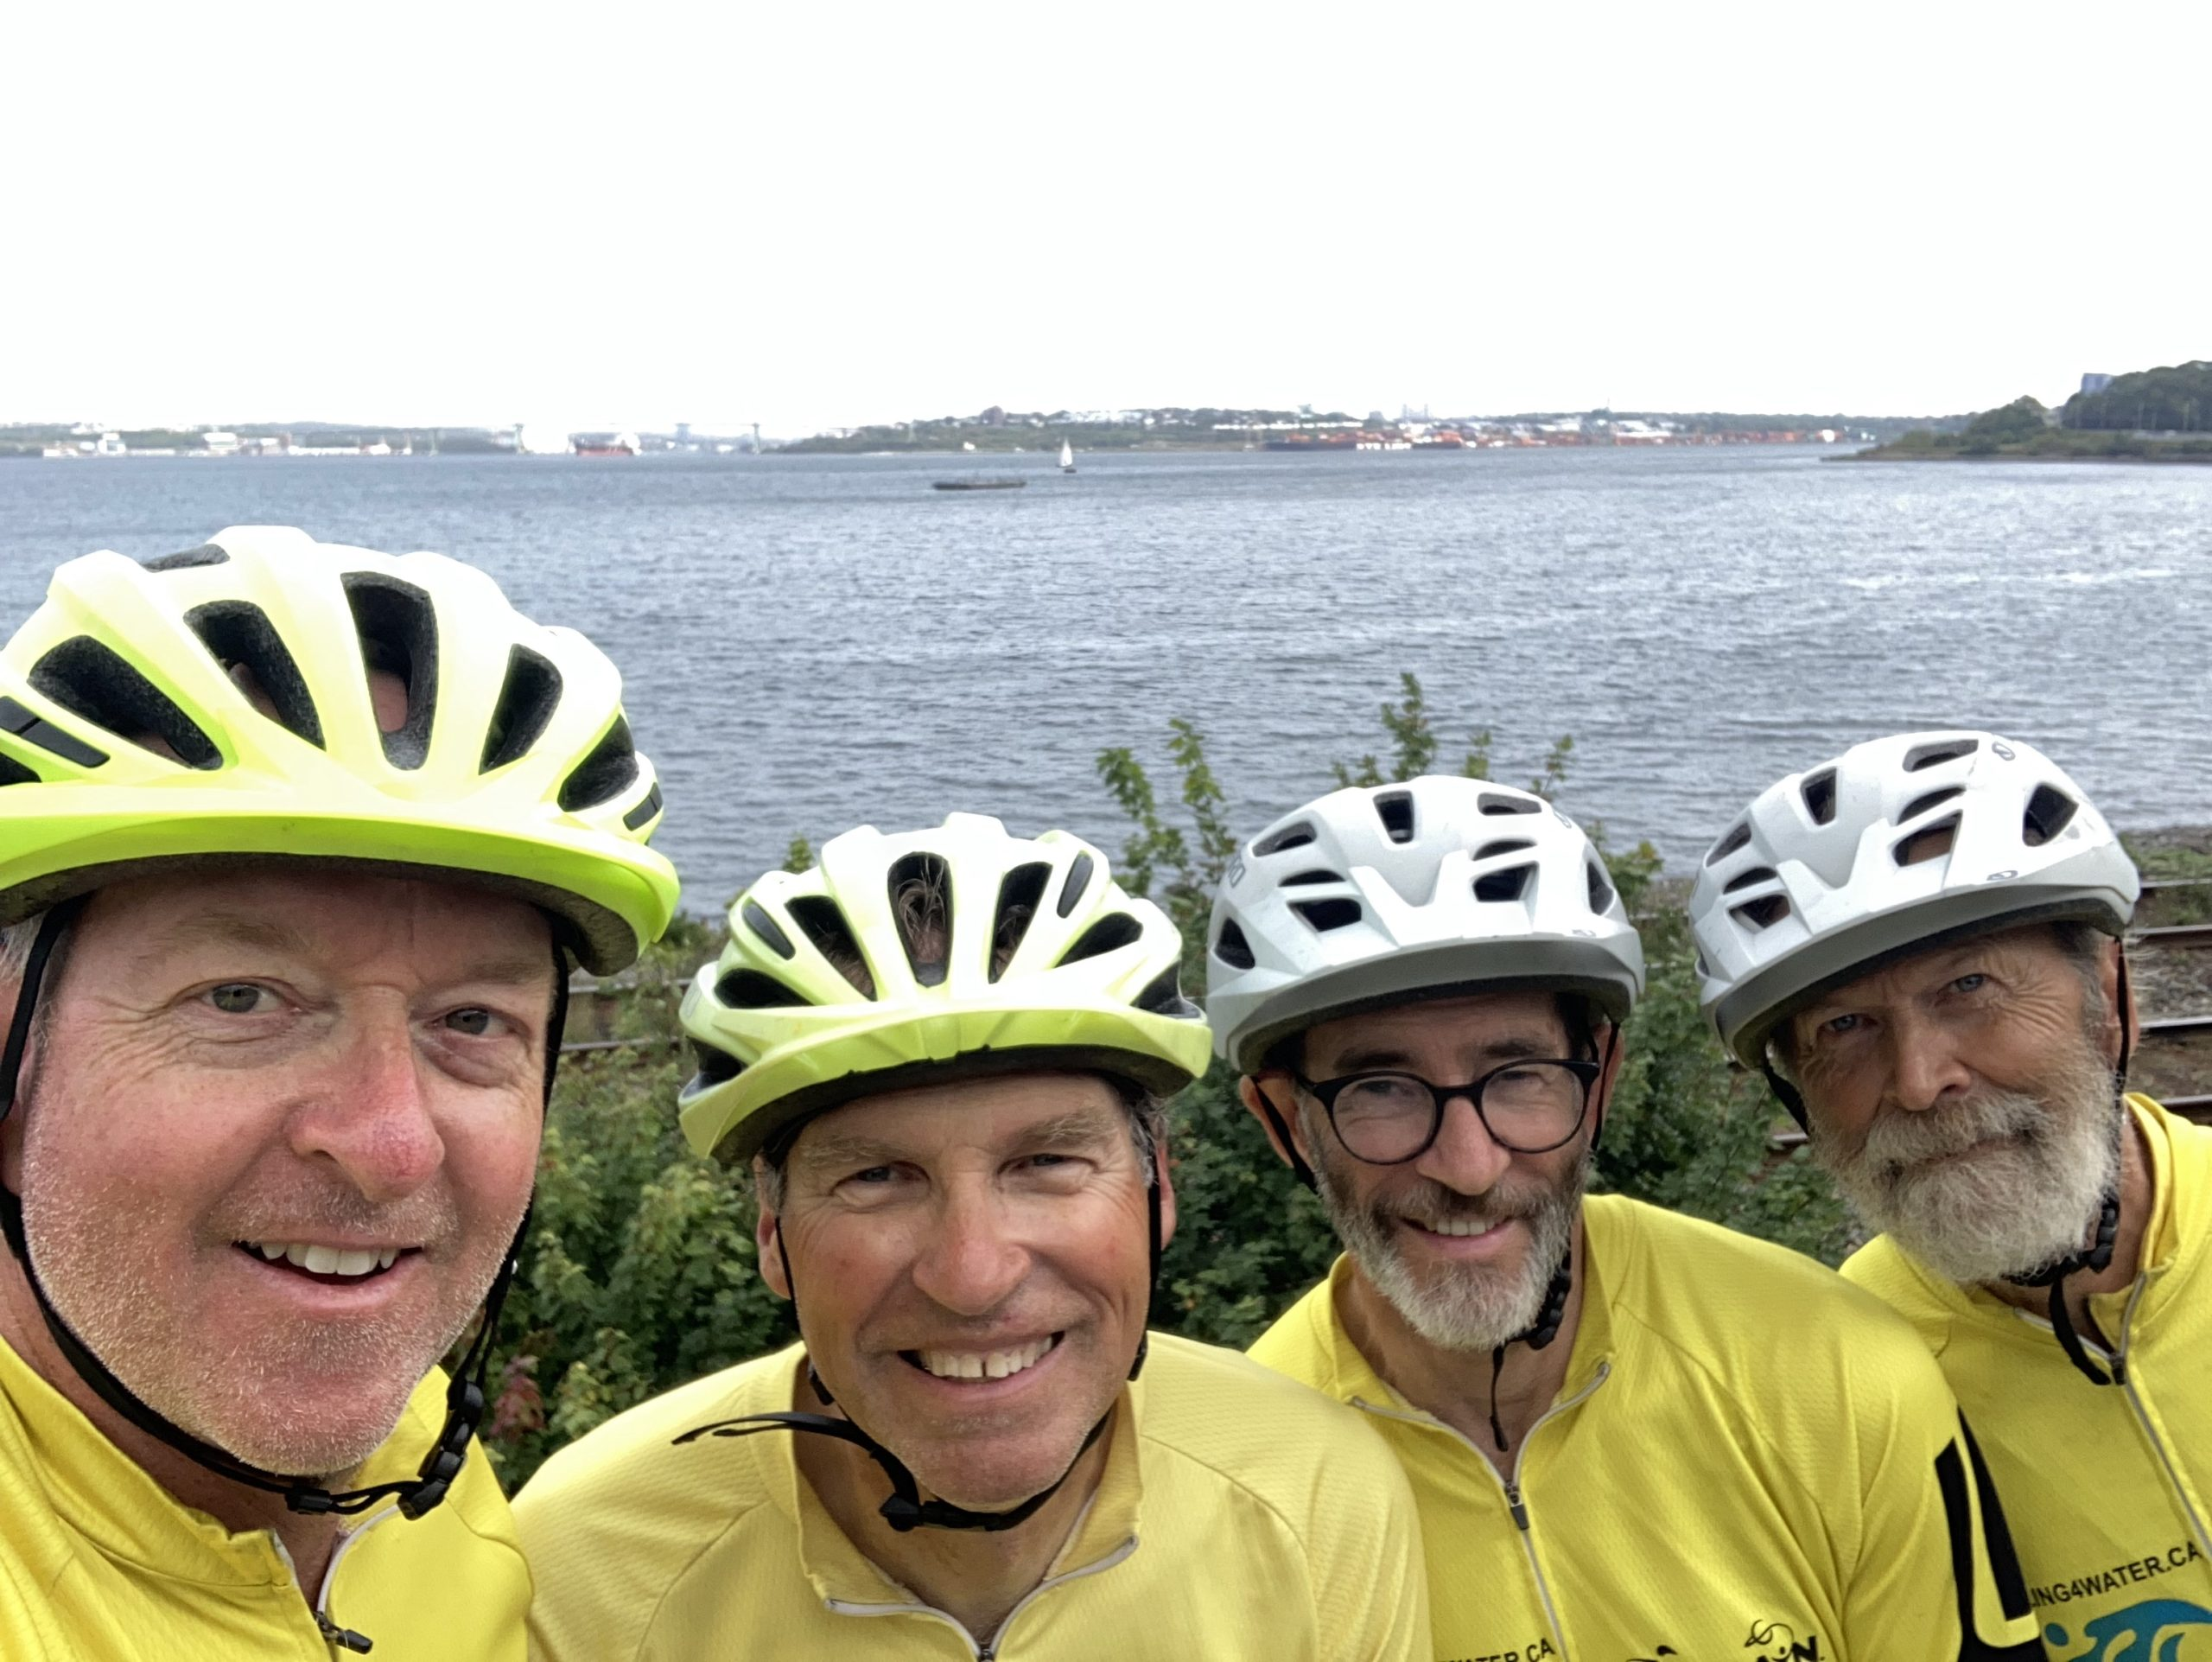 Day 62: We Made it to the Atlantic!